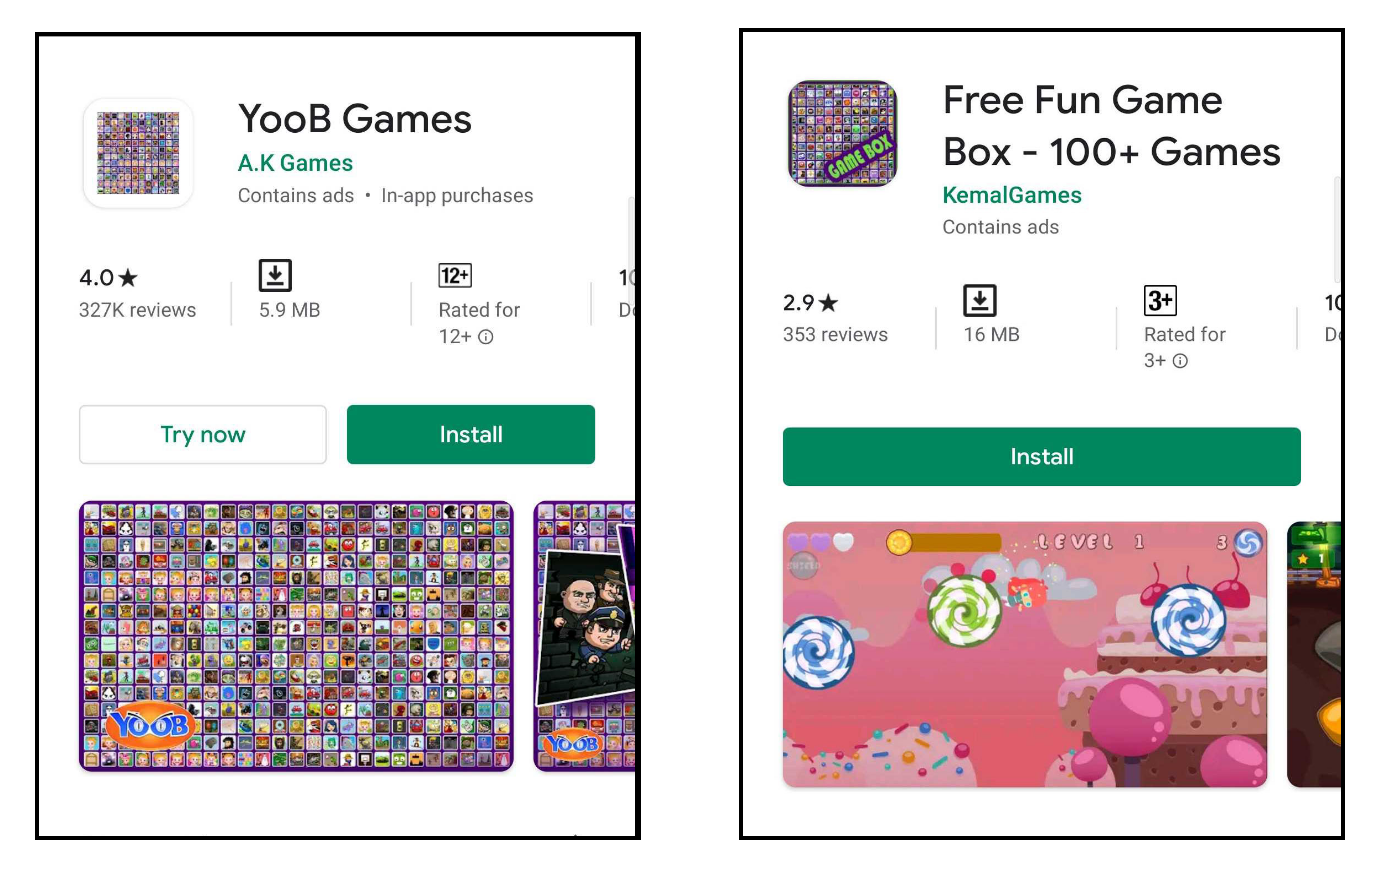 More than 100 Games in one app